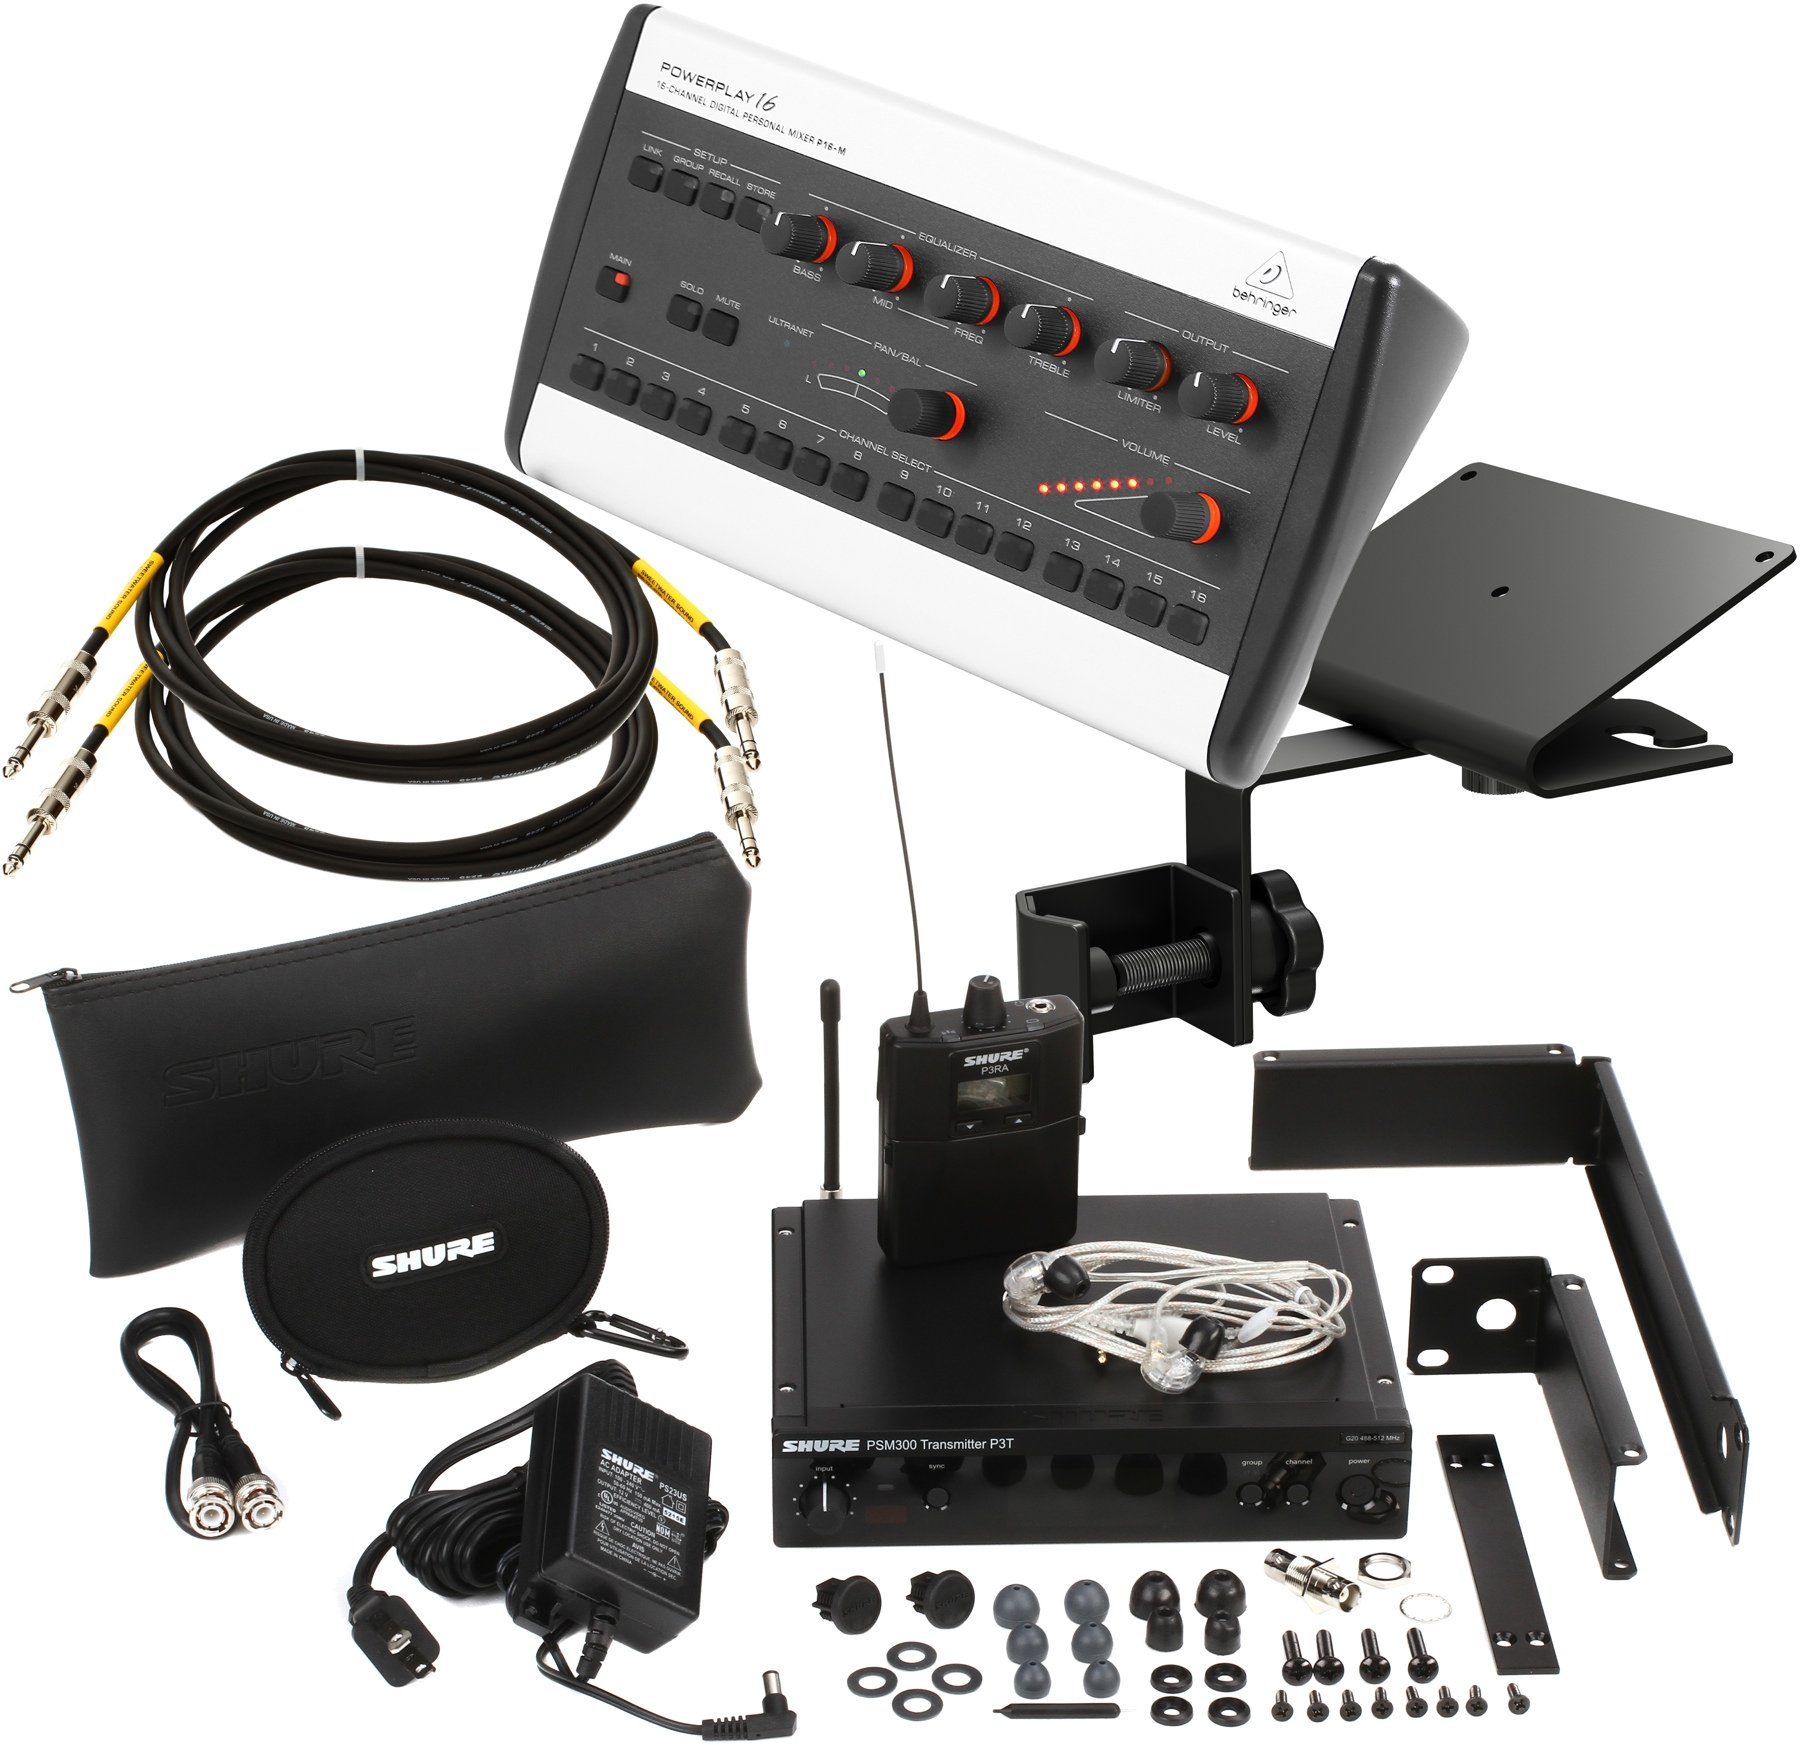 Shure Psm300 Pro Wireless In Ear Monitor System With P16m Sweetwater X32 Rack Live Performance Setup S16 And P16 Image 1